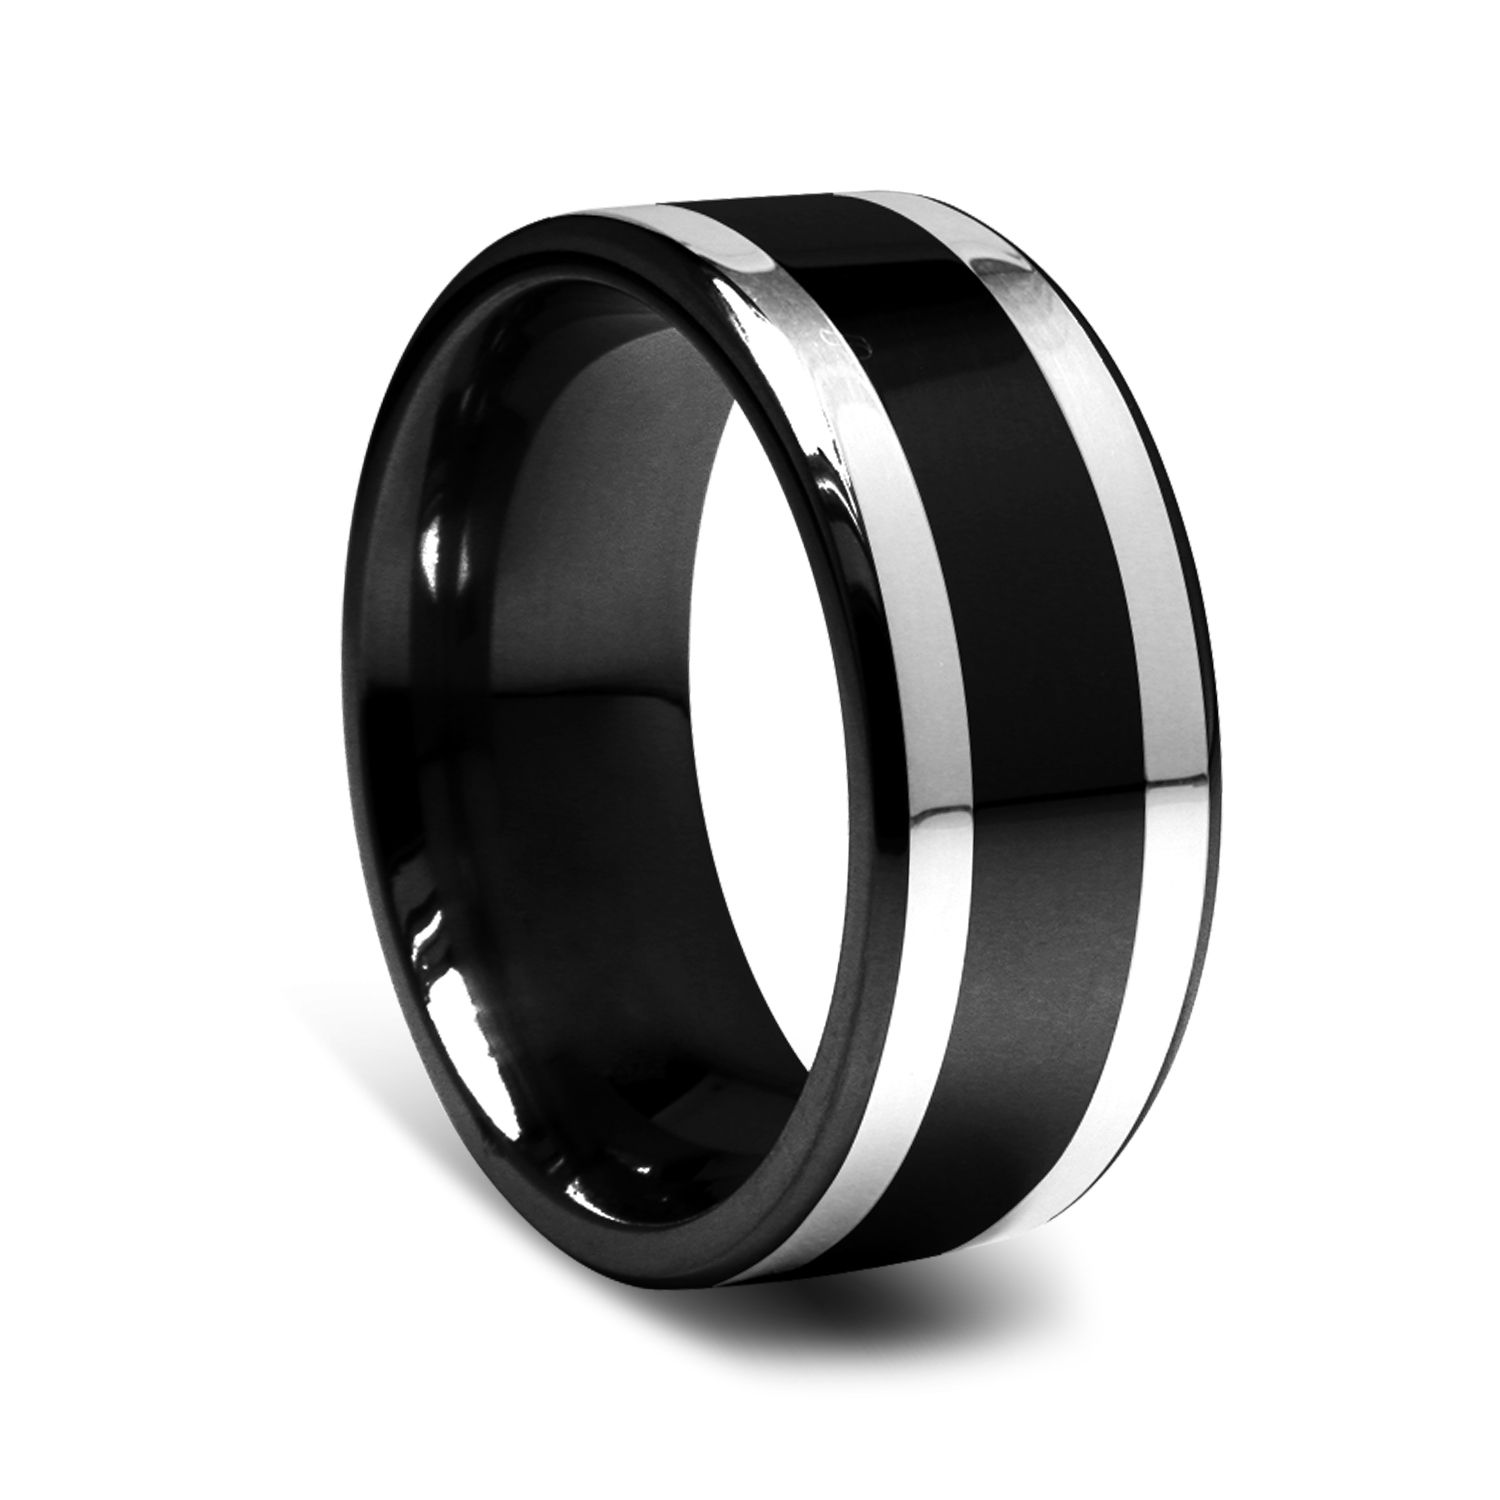 13 Mens Black Wedding Rings Black Wedding Rings Black Gold Wedding Rings Mens Wedding Rings